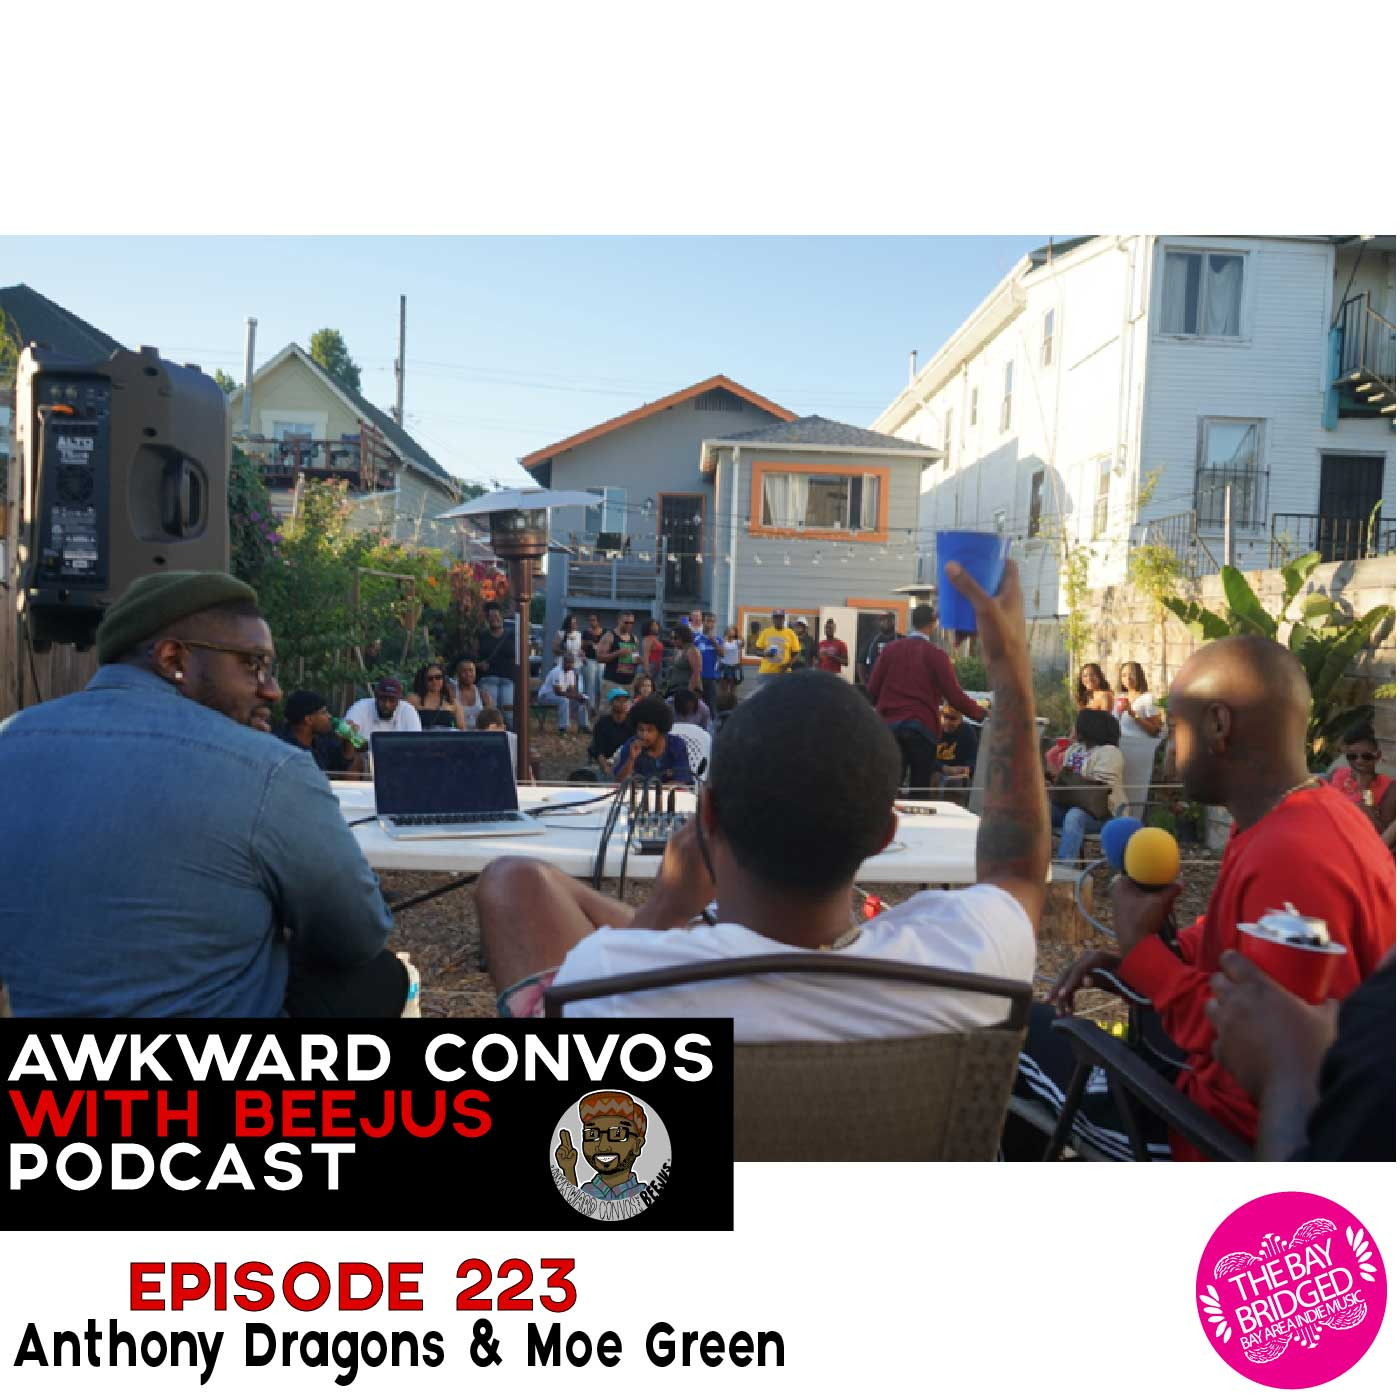 Awkward Convos with Beejus: Anthony Dragons and Moe Green